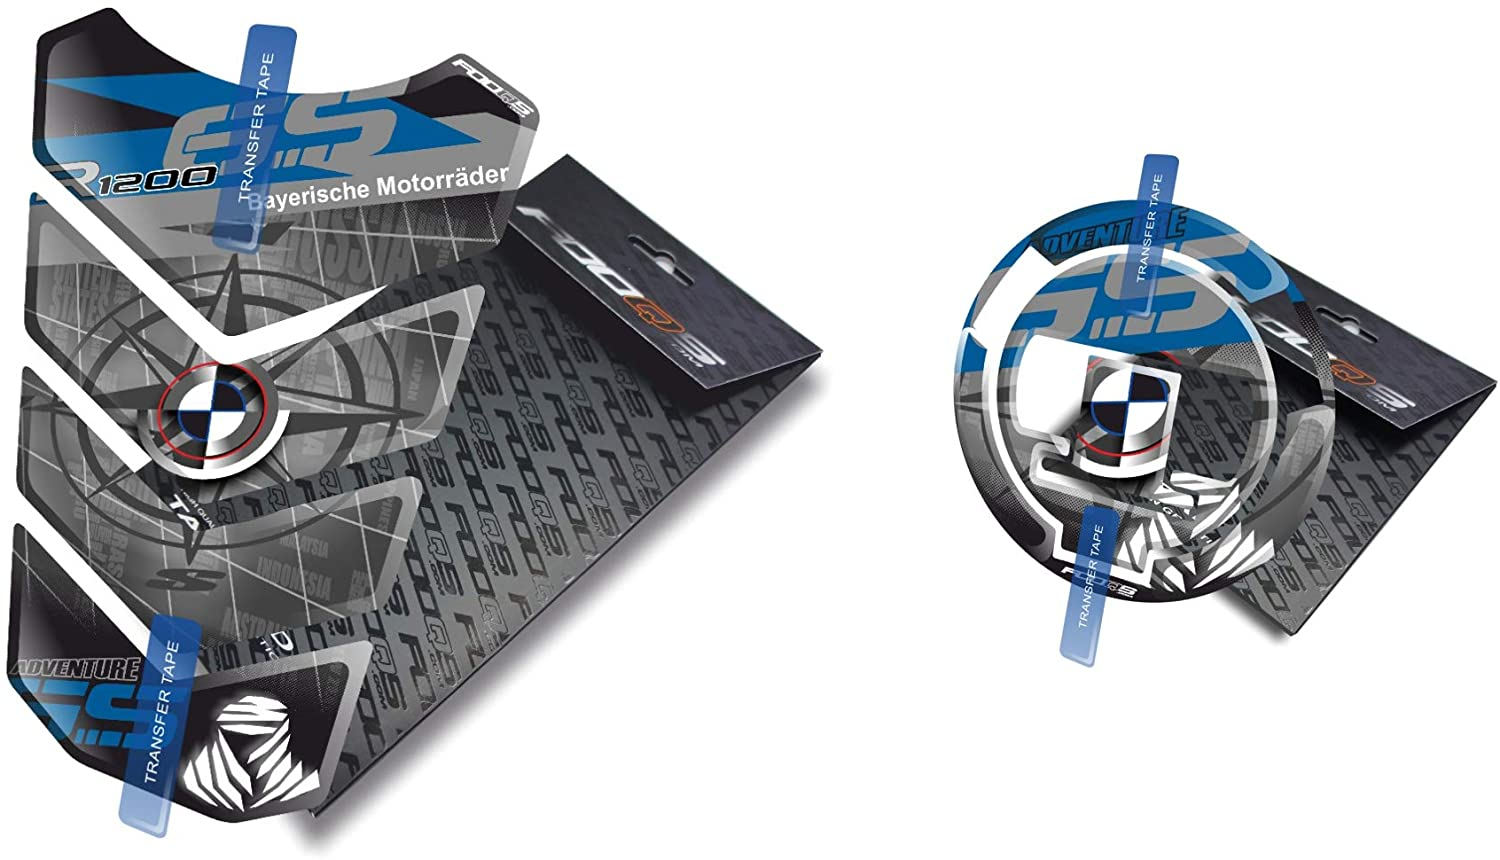 Tankpad and Cappad for R 1200 GS Adv Adventure (Blue)